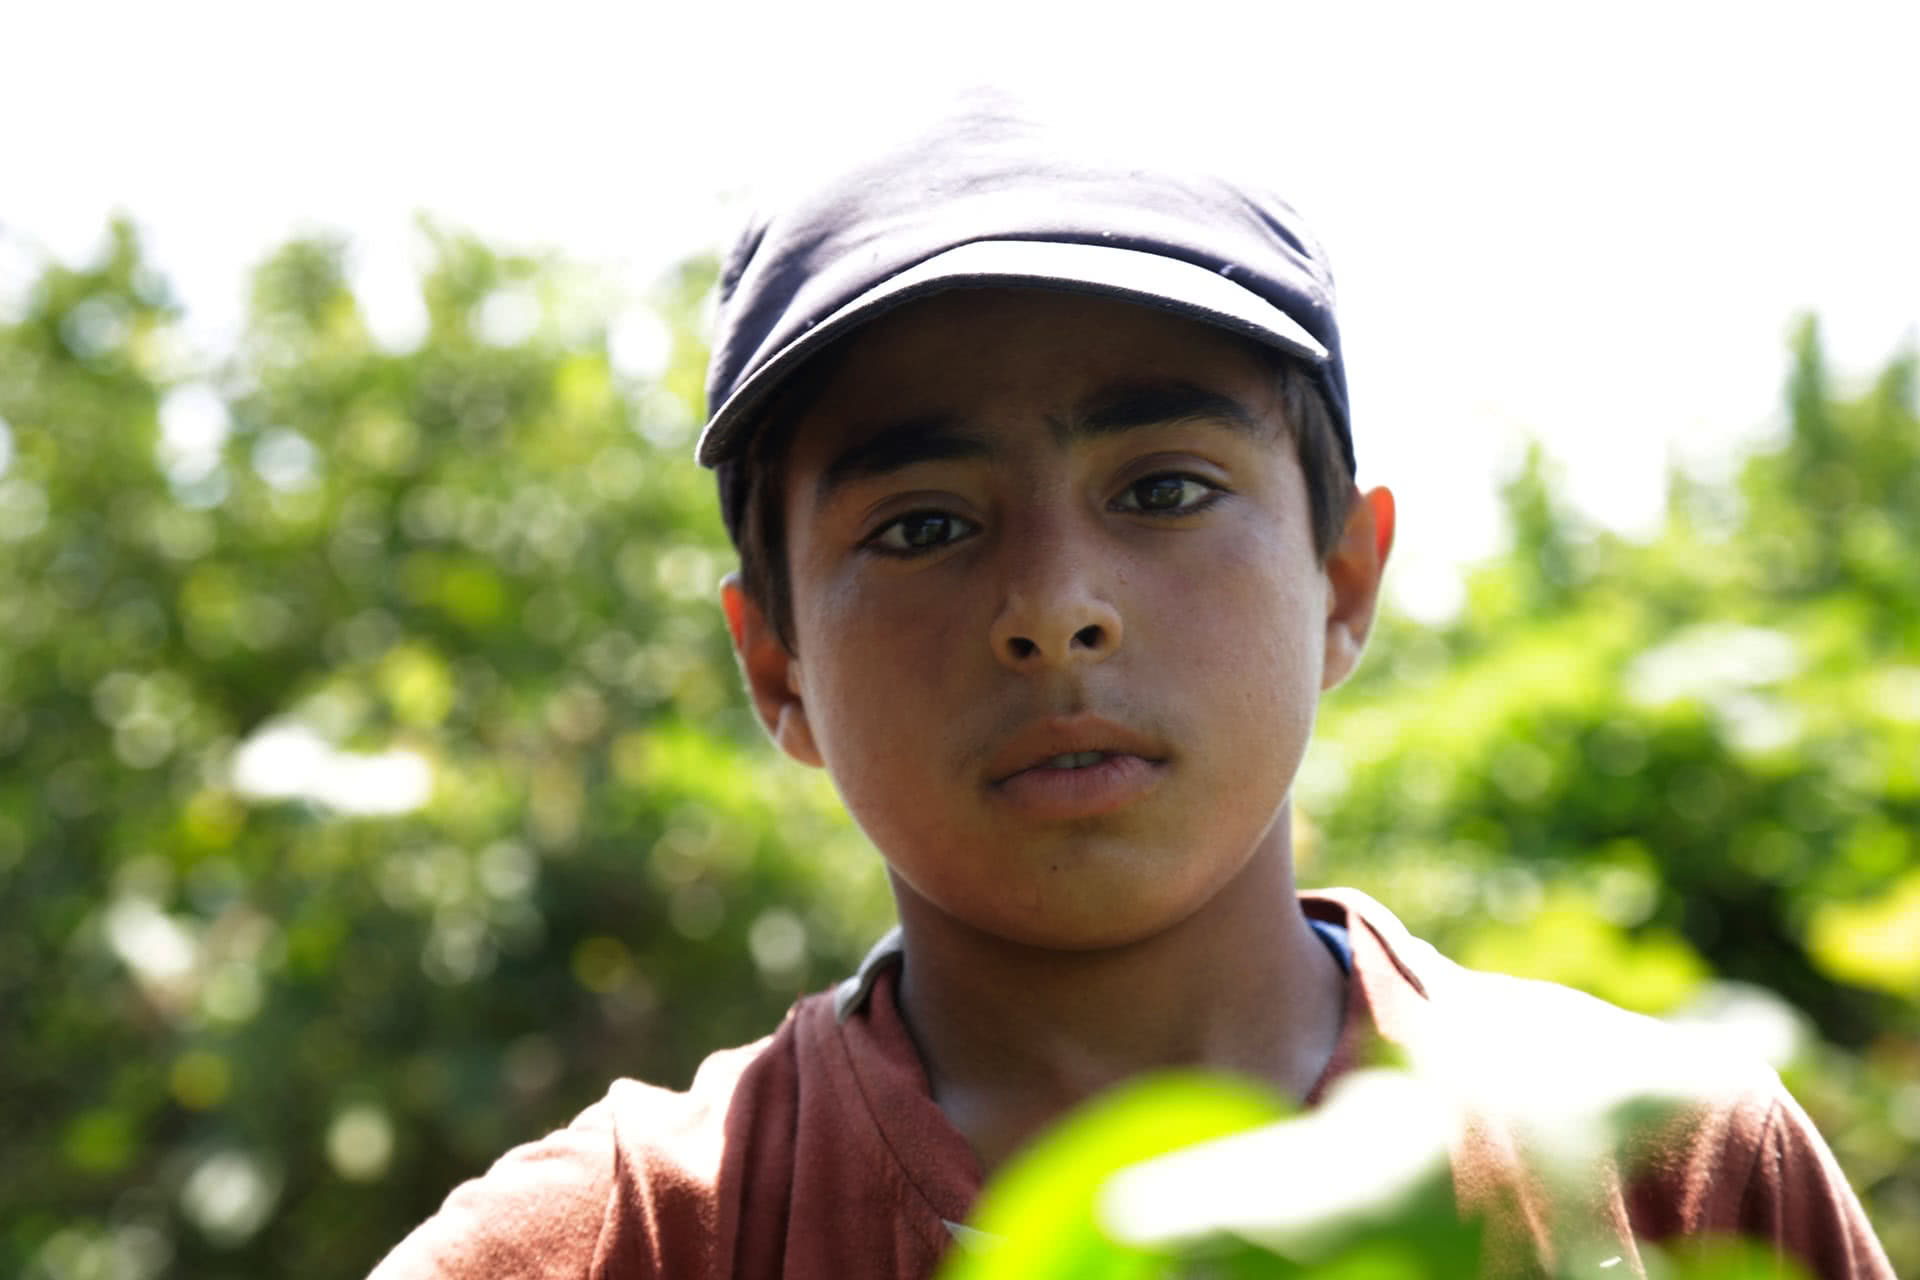 Ahmad Abu Samra, 13, works on his family's land to help provide food for his family. (Photo: DCIP / Saud Abu Ramadan)